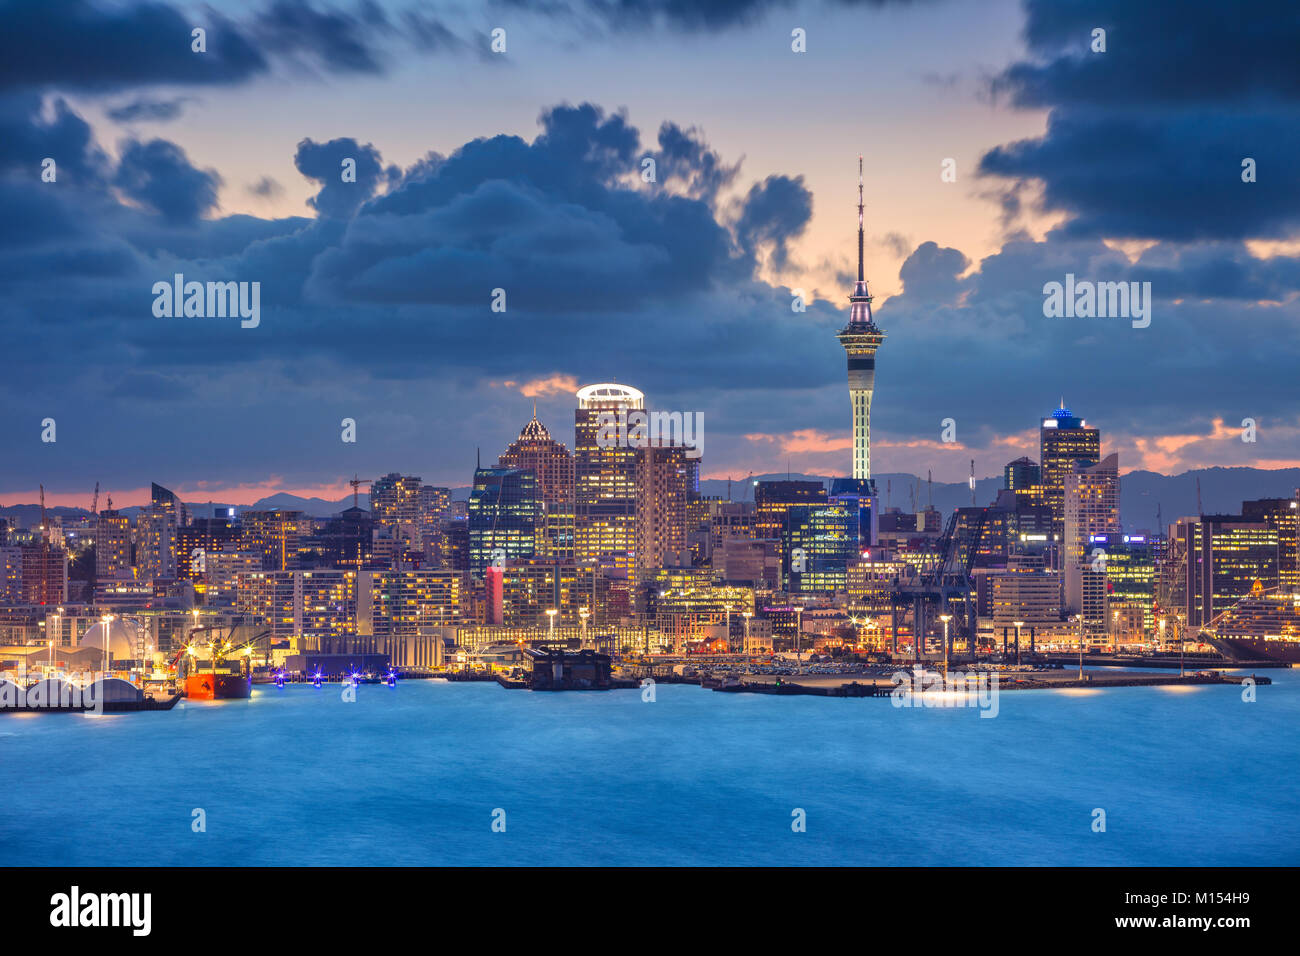 Auckland. Cityscape image of Auckland skyline, New Zealand during sunset. Stock Photo